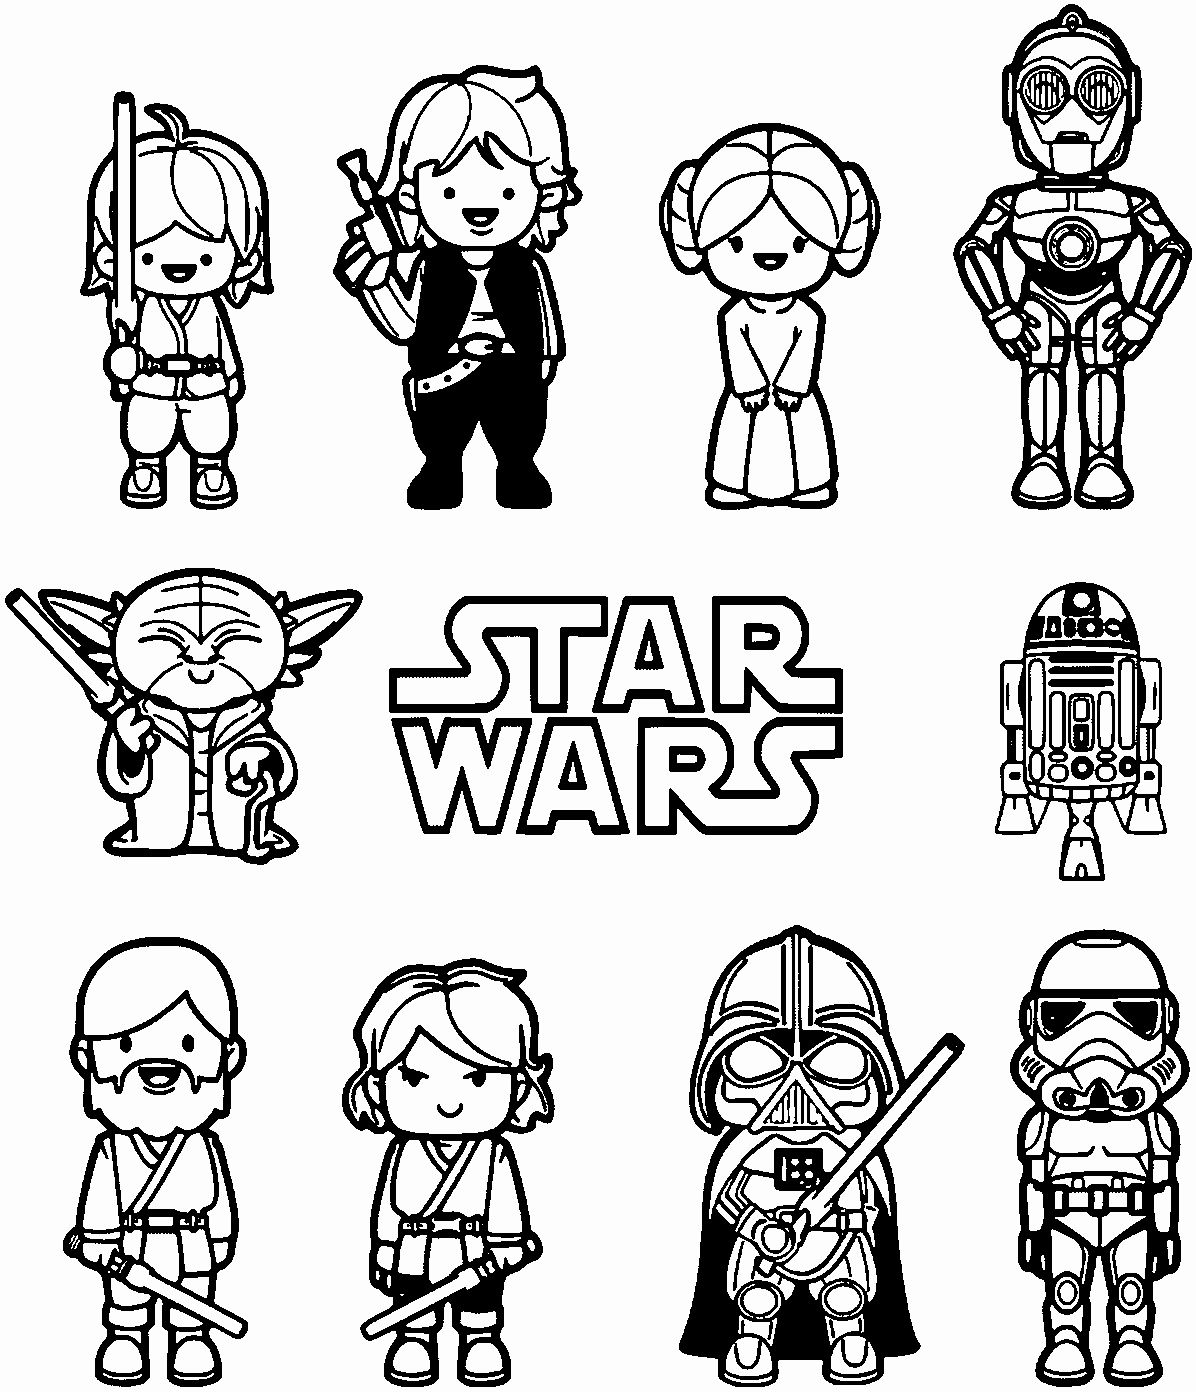 Star Wars Coloring Pages Free Unique Star Wars Coloring Pages Luke Skywalker Star Wars Color Star Wars Coloring Book Star Wars Coloring Sheet Star Wars Cartoon